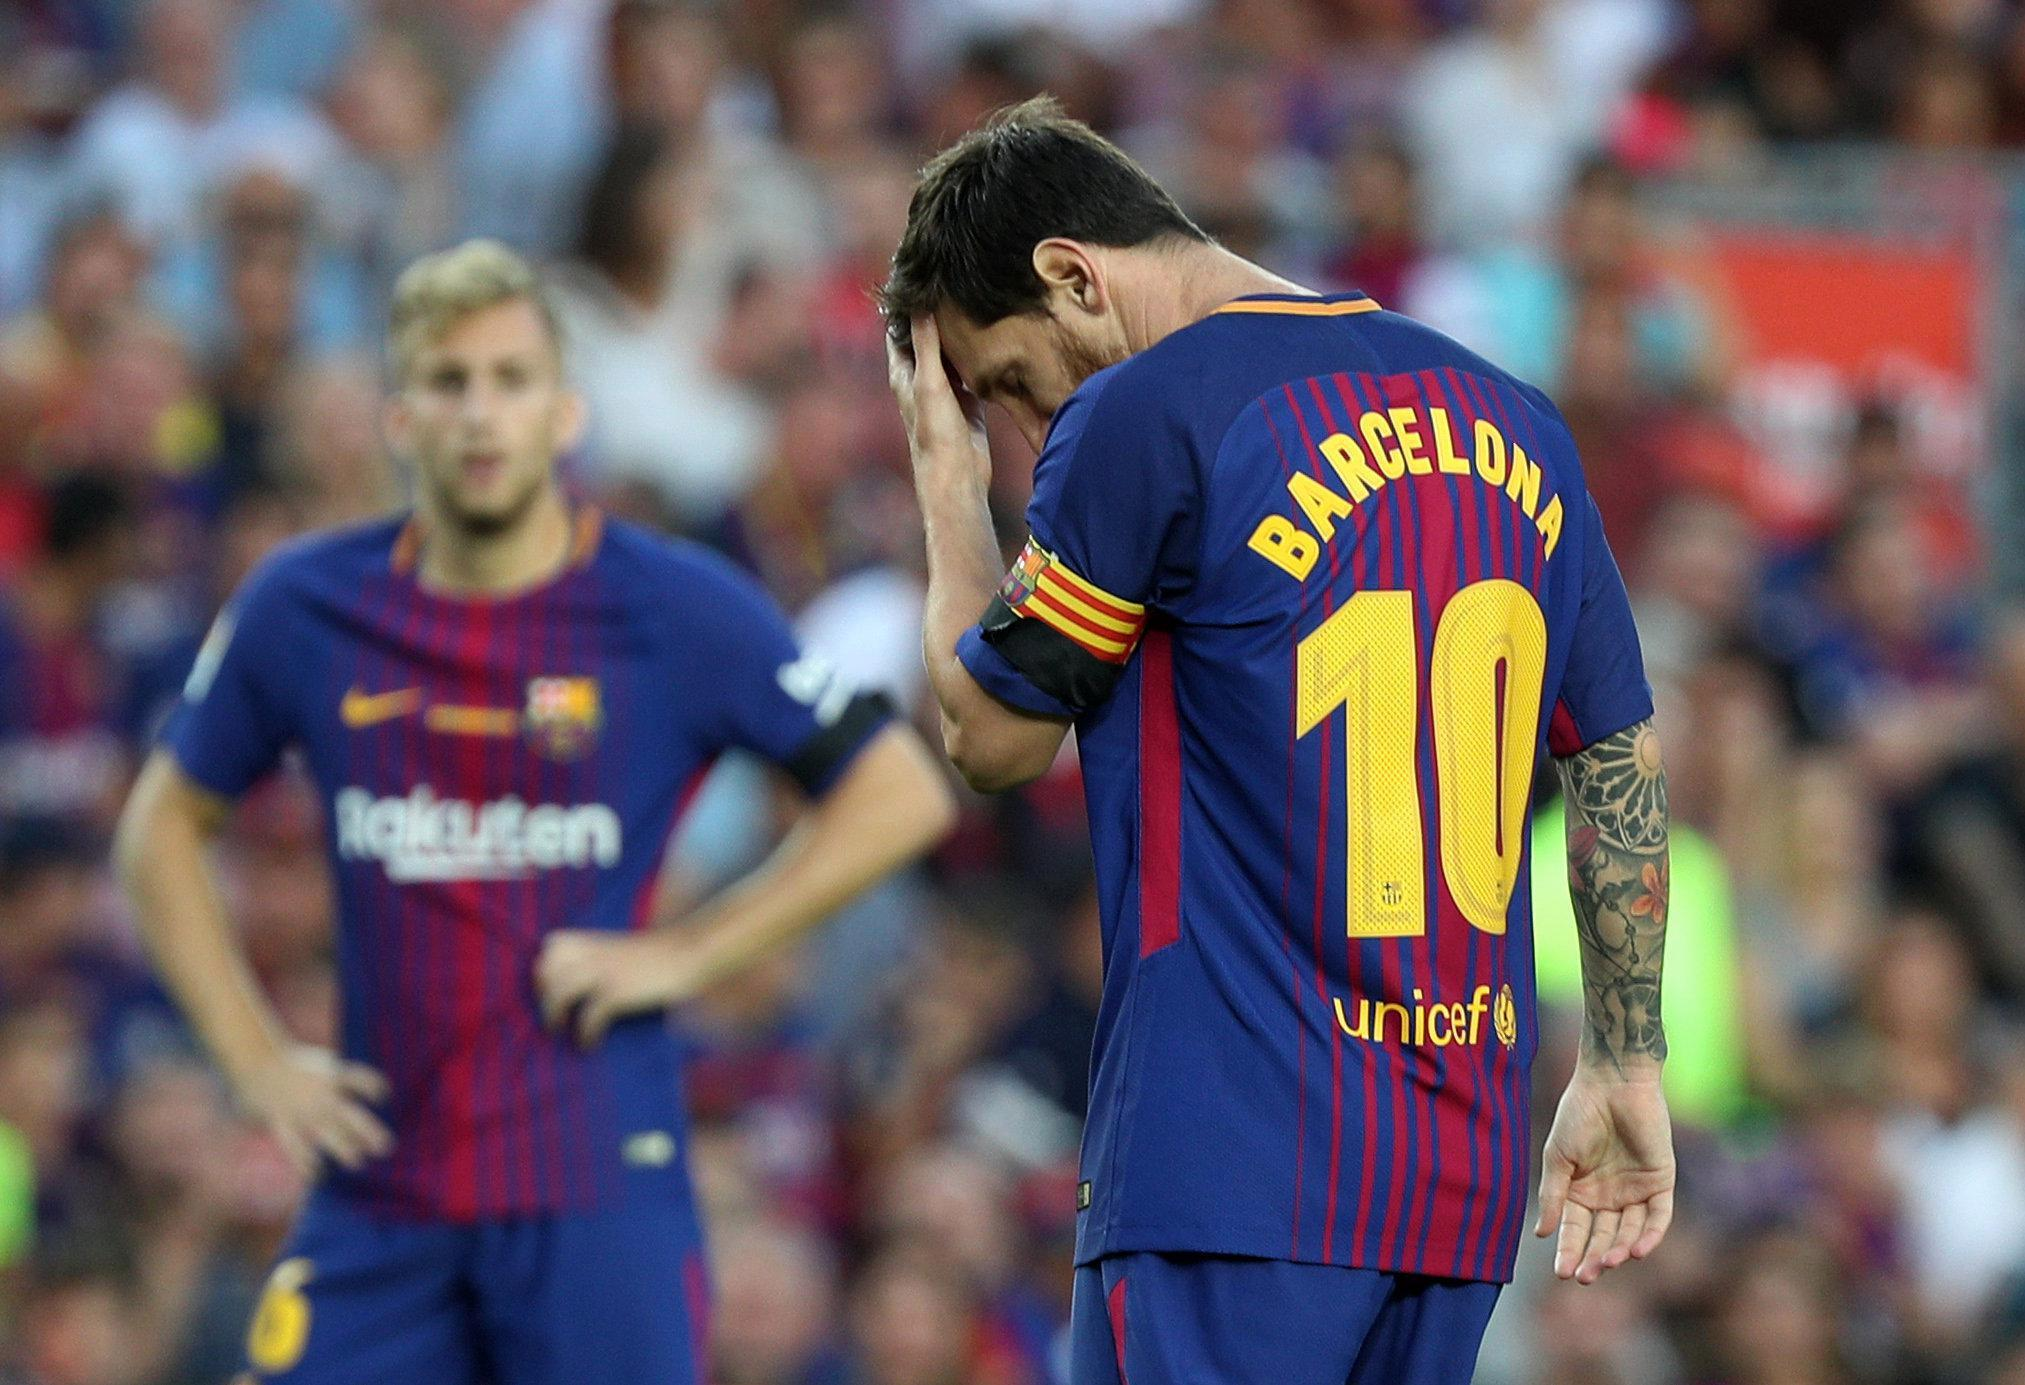 Neymar left Lionel Messi and co earlier this month for PSG